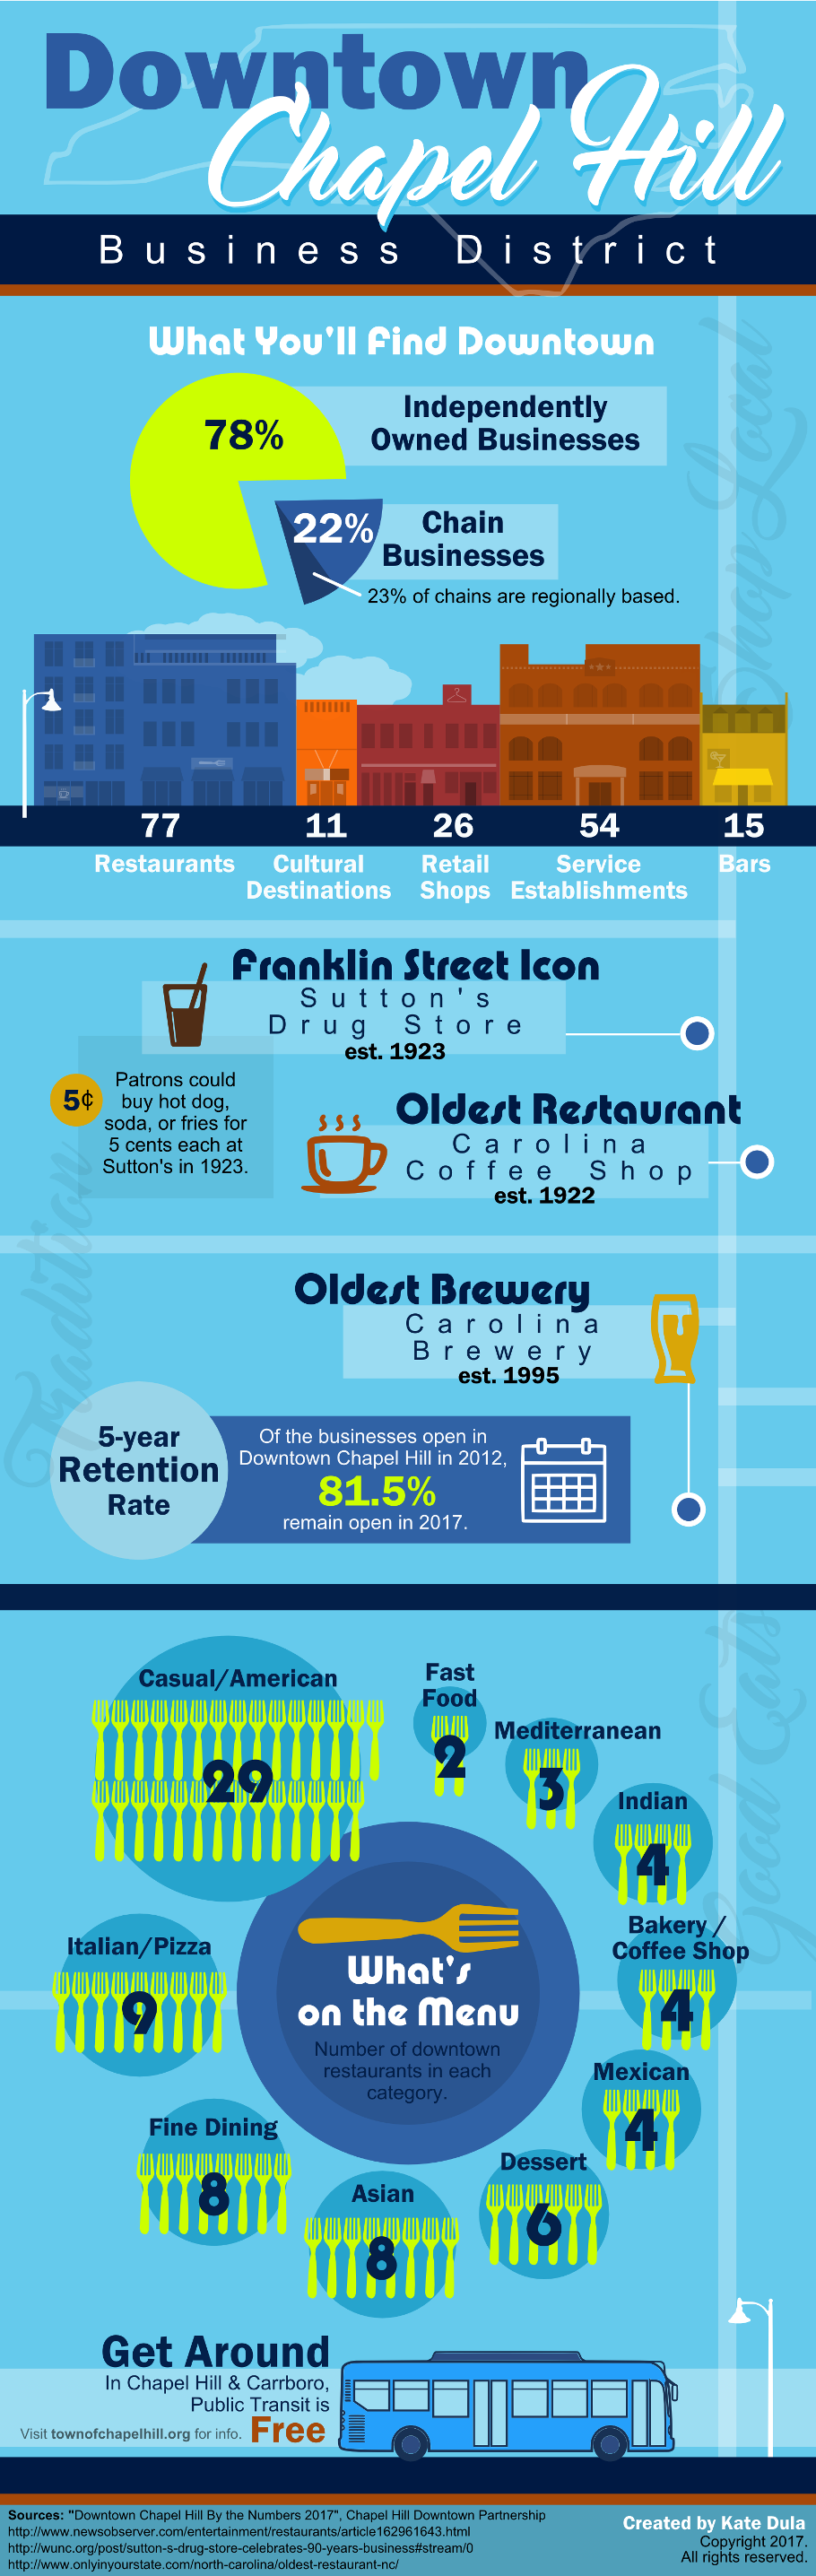 Downtown Chapel Hill Infographic Restaurants Trivia And Business Mix Designed By Kate